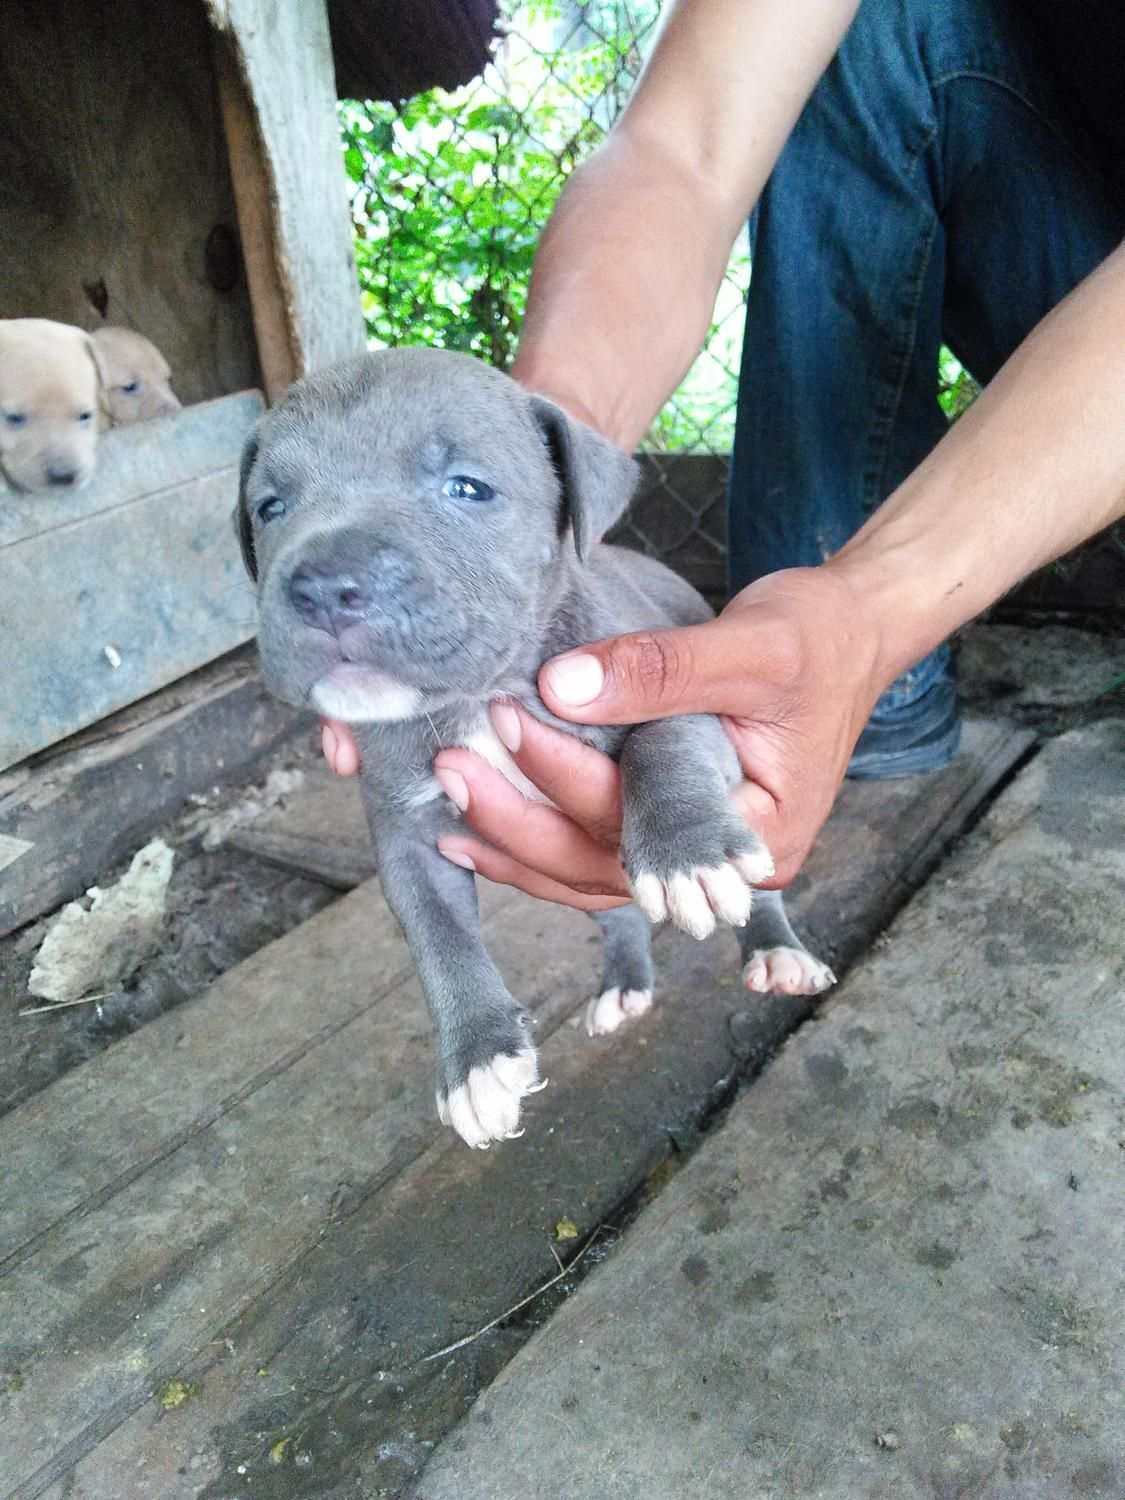 For sale blue nose pitbull puppies item posted in the accessories